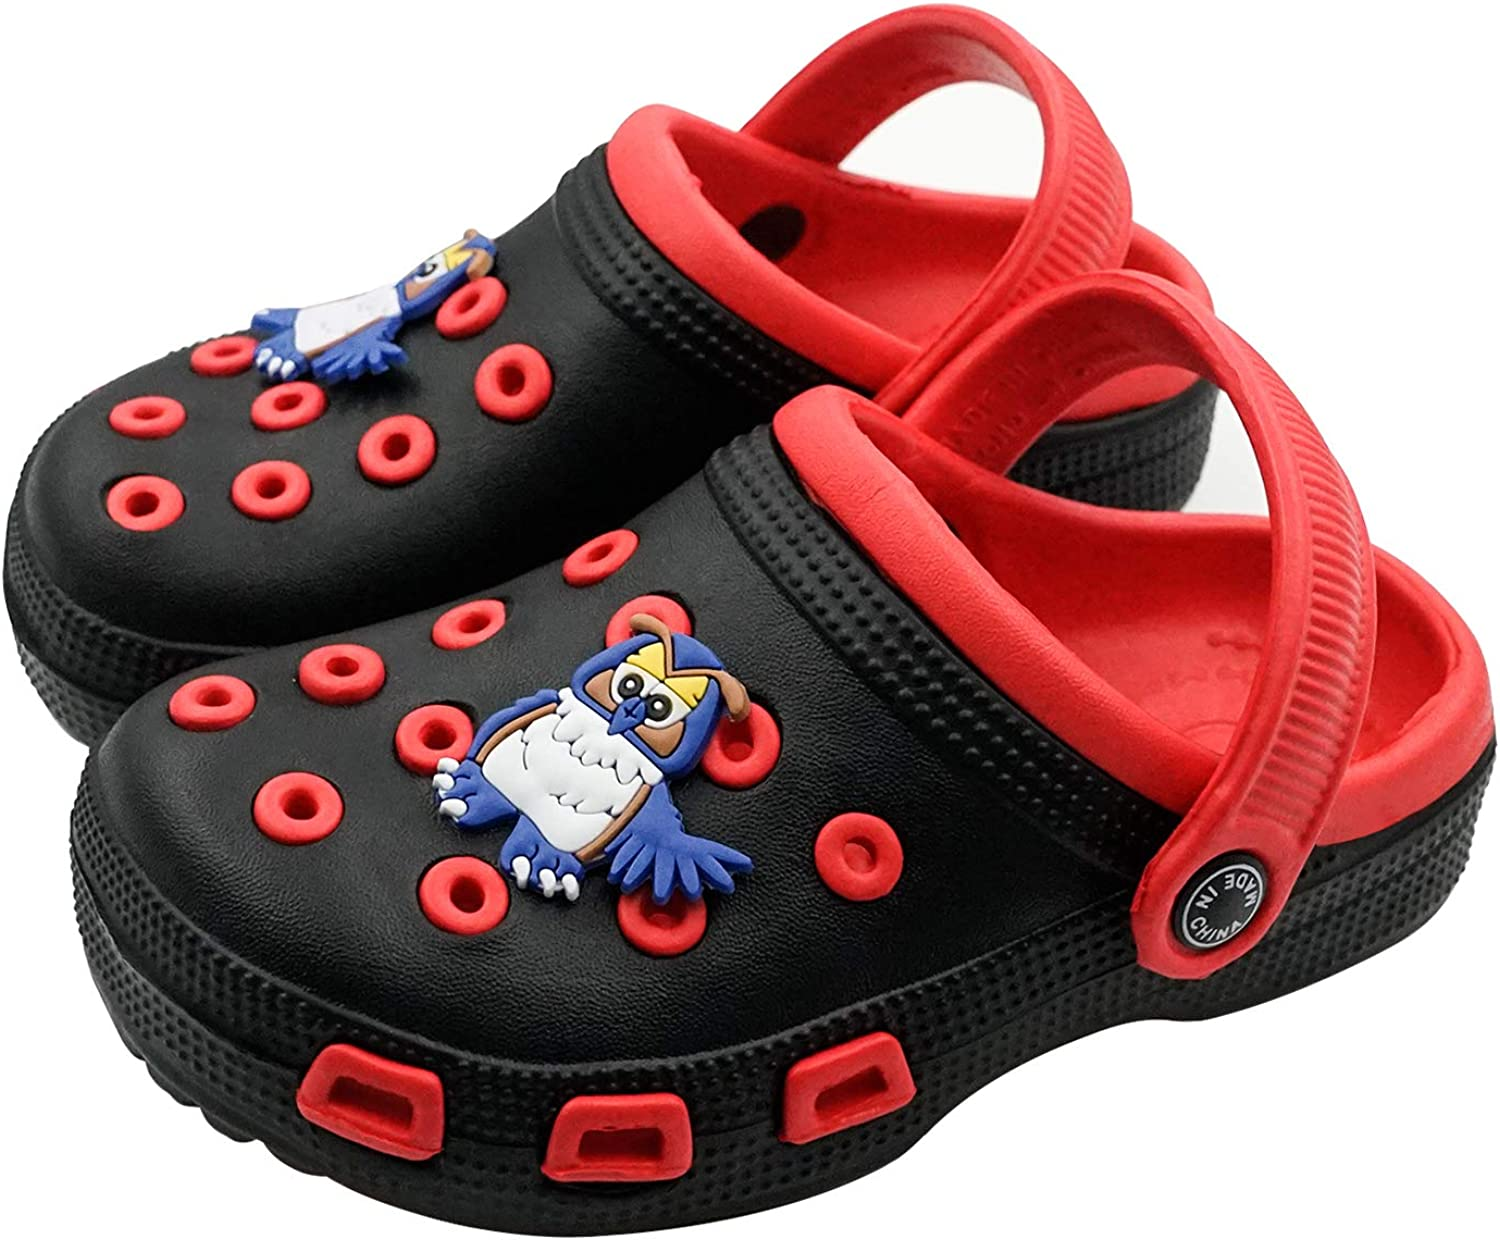 Namektch Toddler Little Kids Clogs Non-Slip Popular brand in the world Sandals Max 68% OFF Slippers Gi